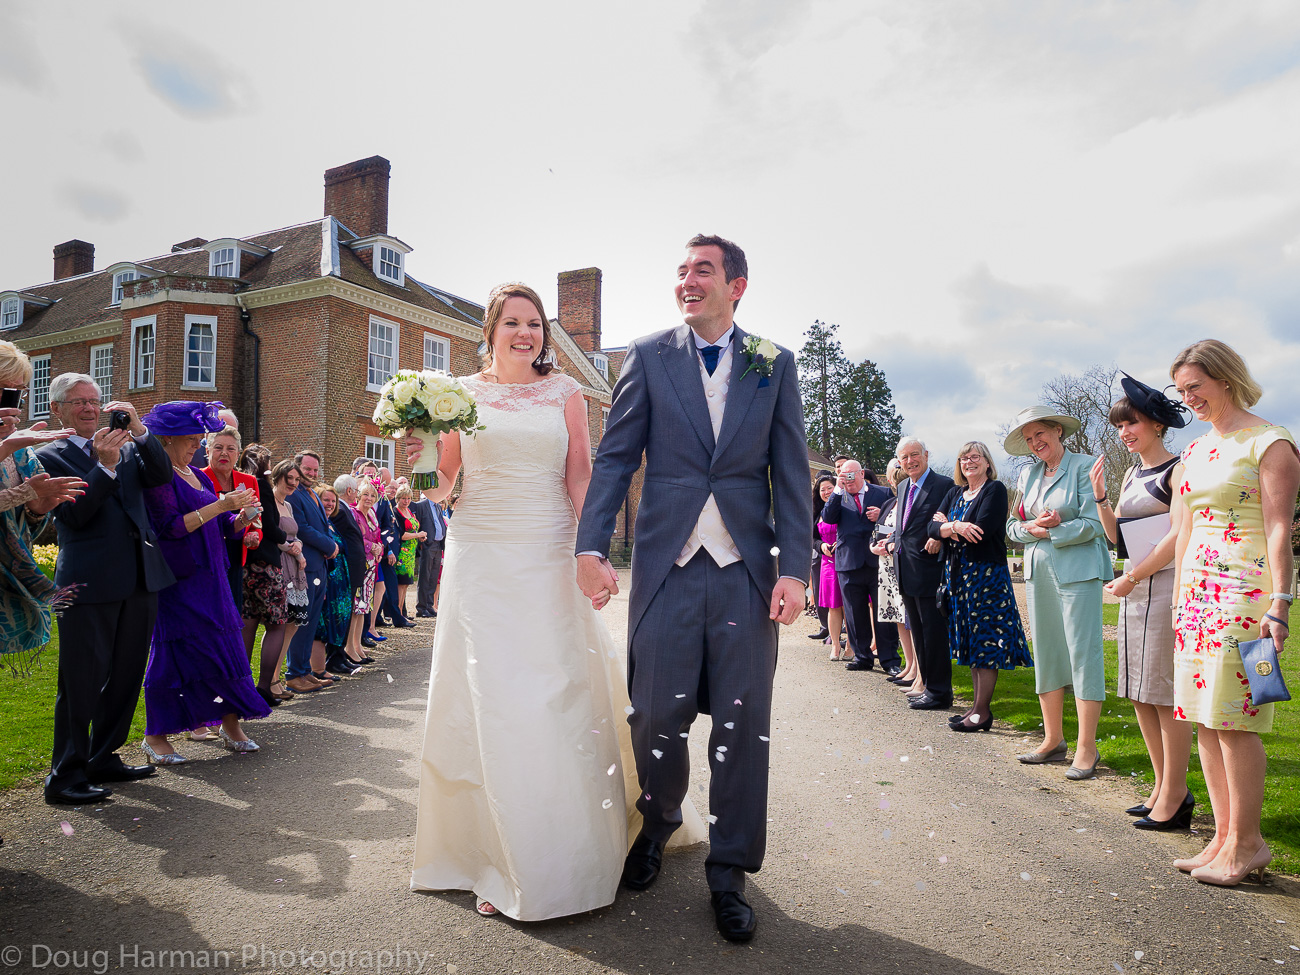 Tim and Louise Carter celebrate as gusts throw confetti on the occasion of their wedding, at Chilston Park Hotel, near Lenham.